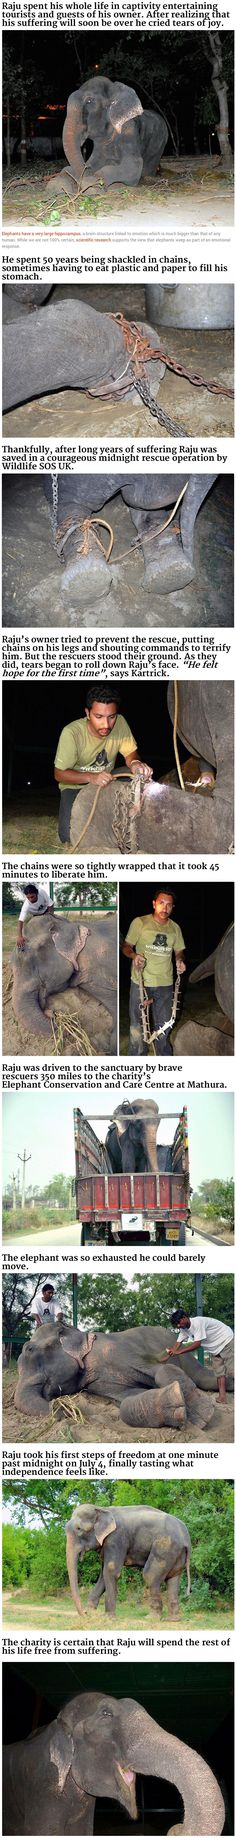 Elephant cries after being rescued from 50 years of suffering.